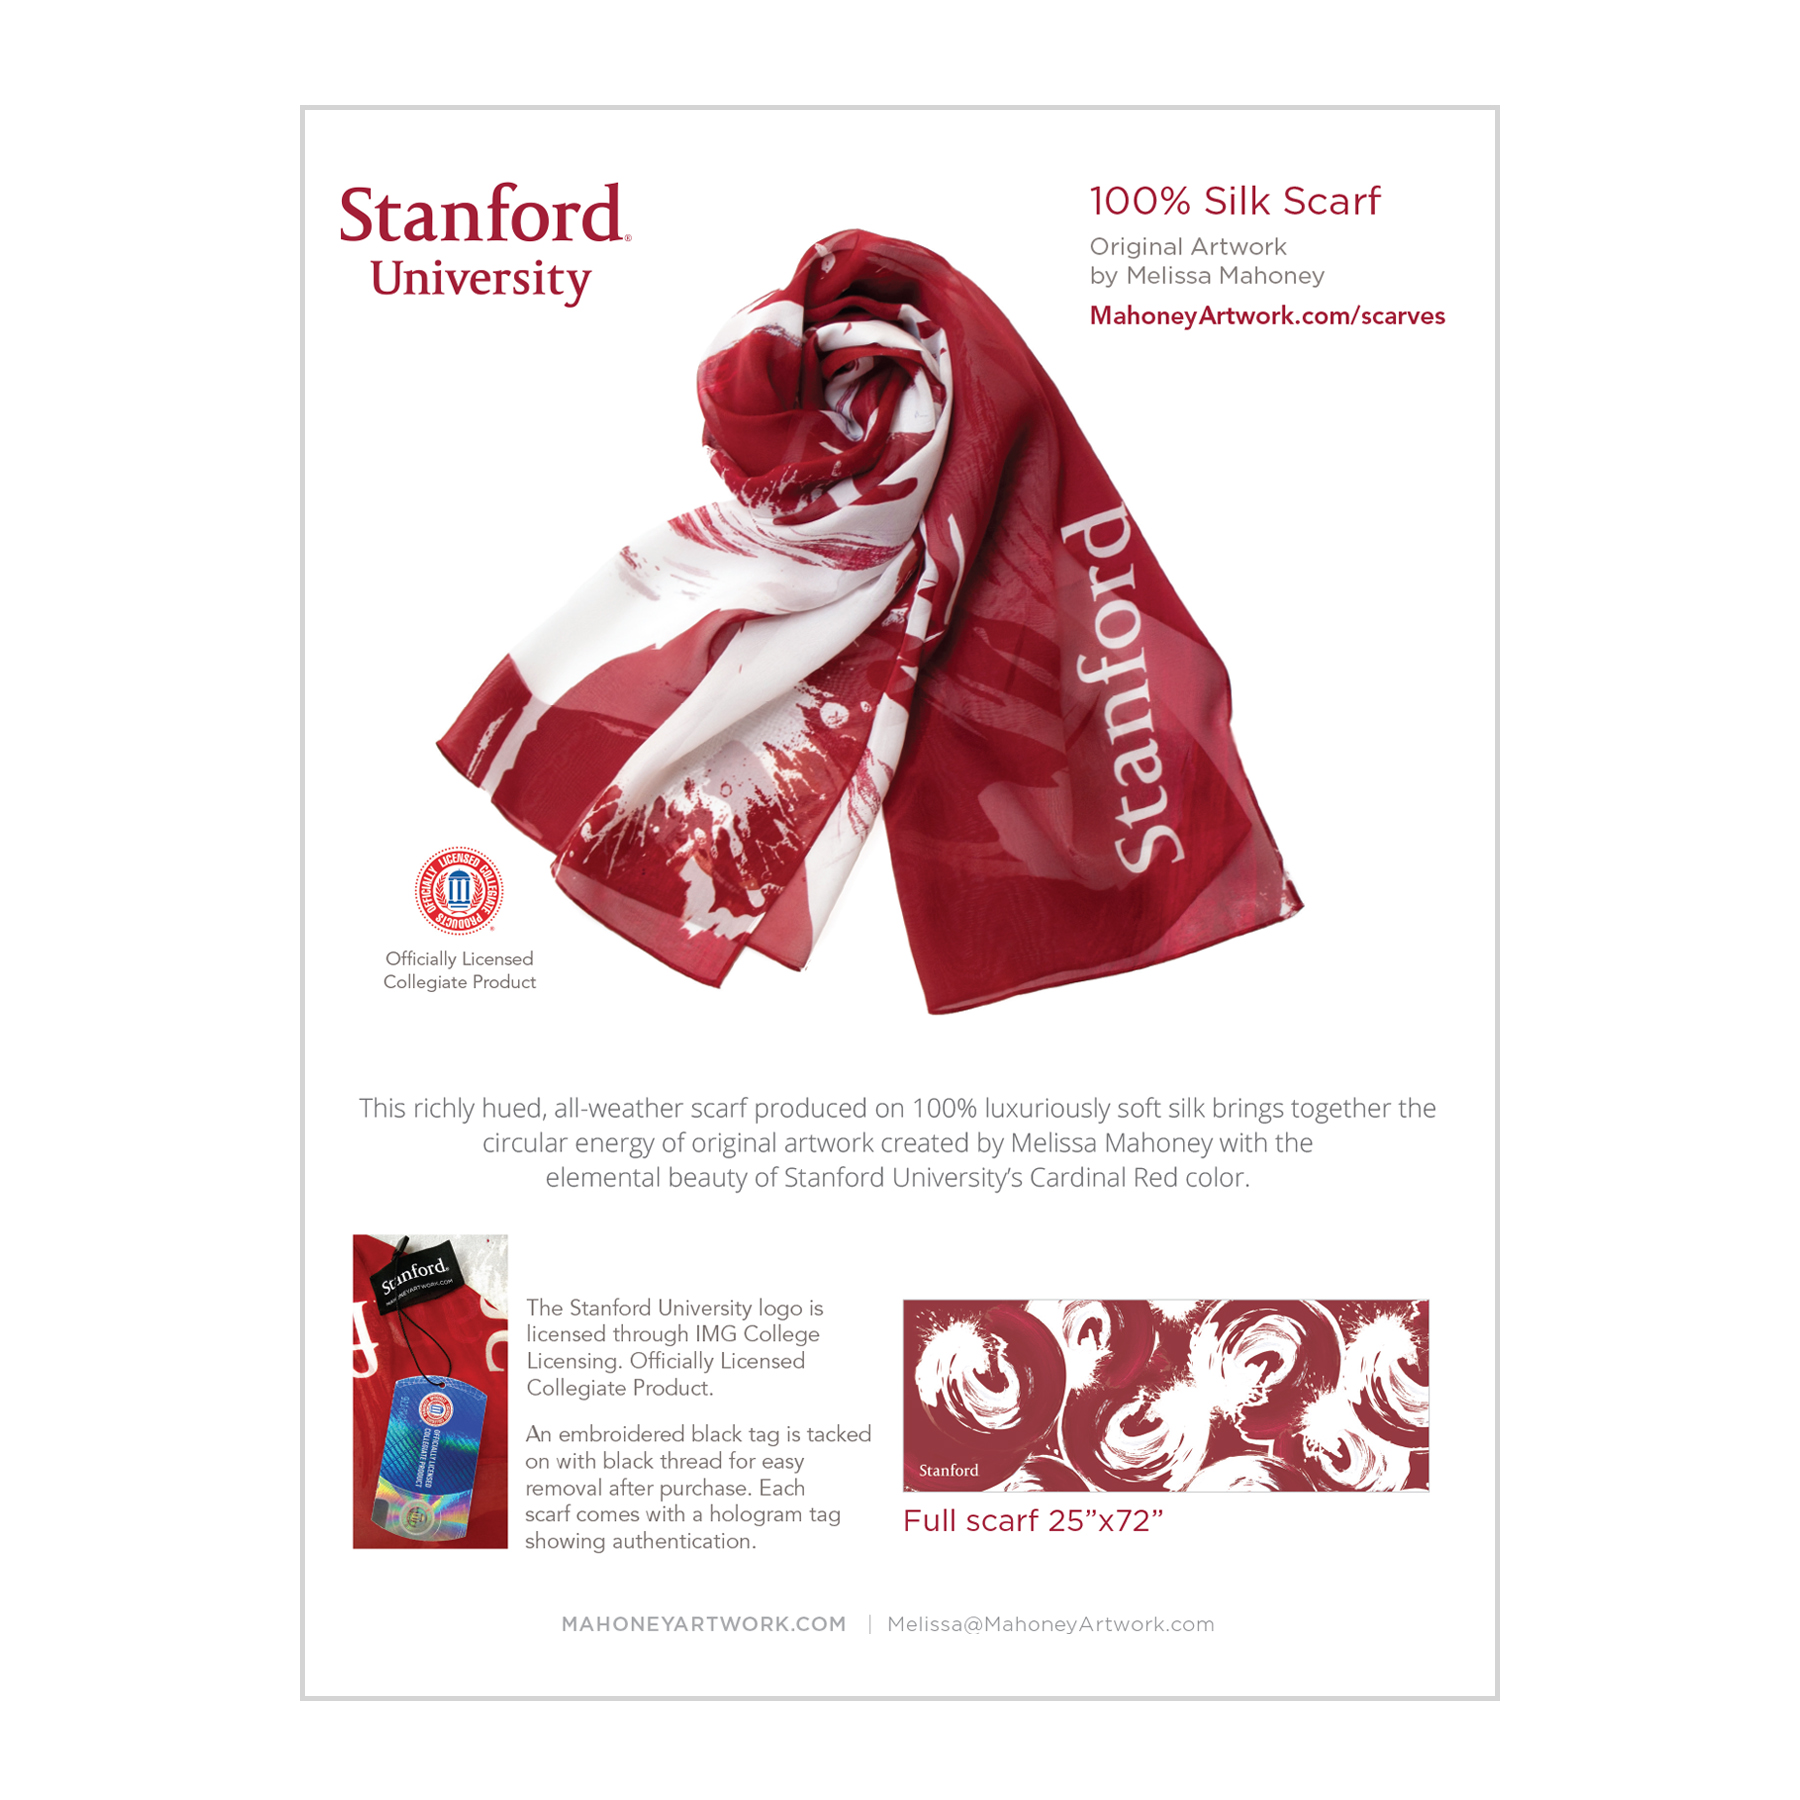 Mahoney_Stanford_Retail_Sheet_3.jpg